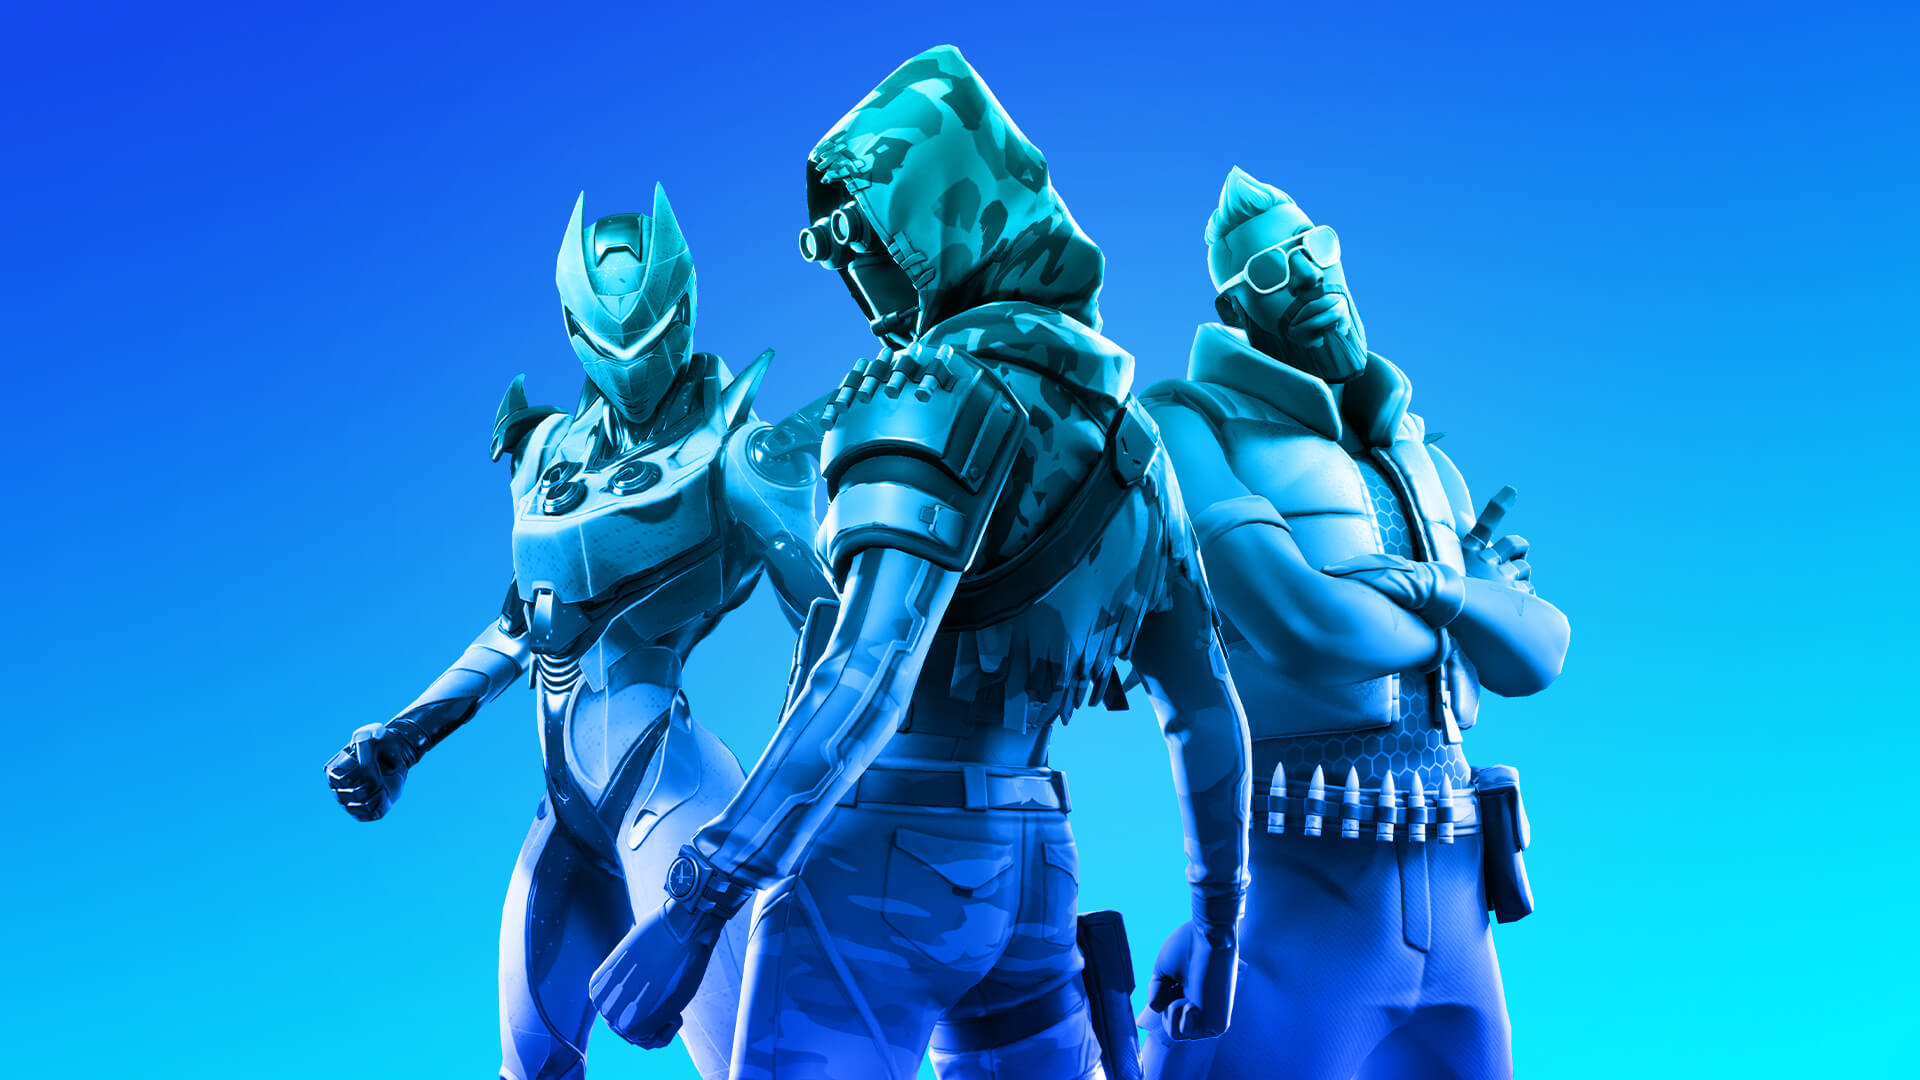 Fortnite Competitive Updates For Chapter 2 Season 4